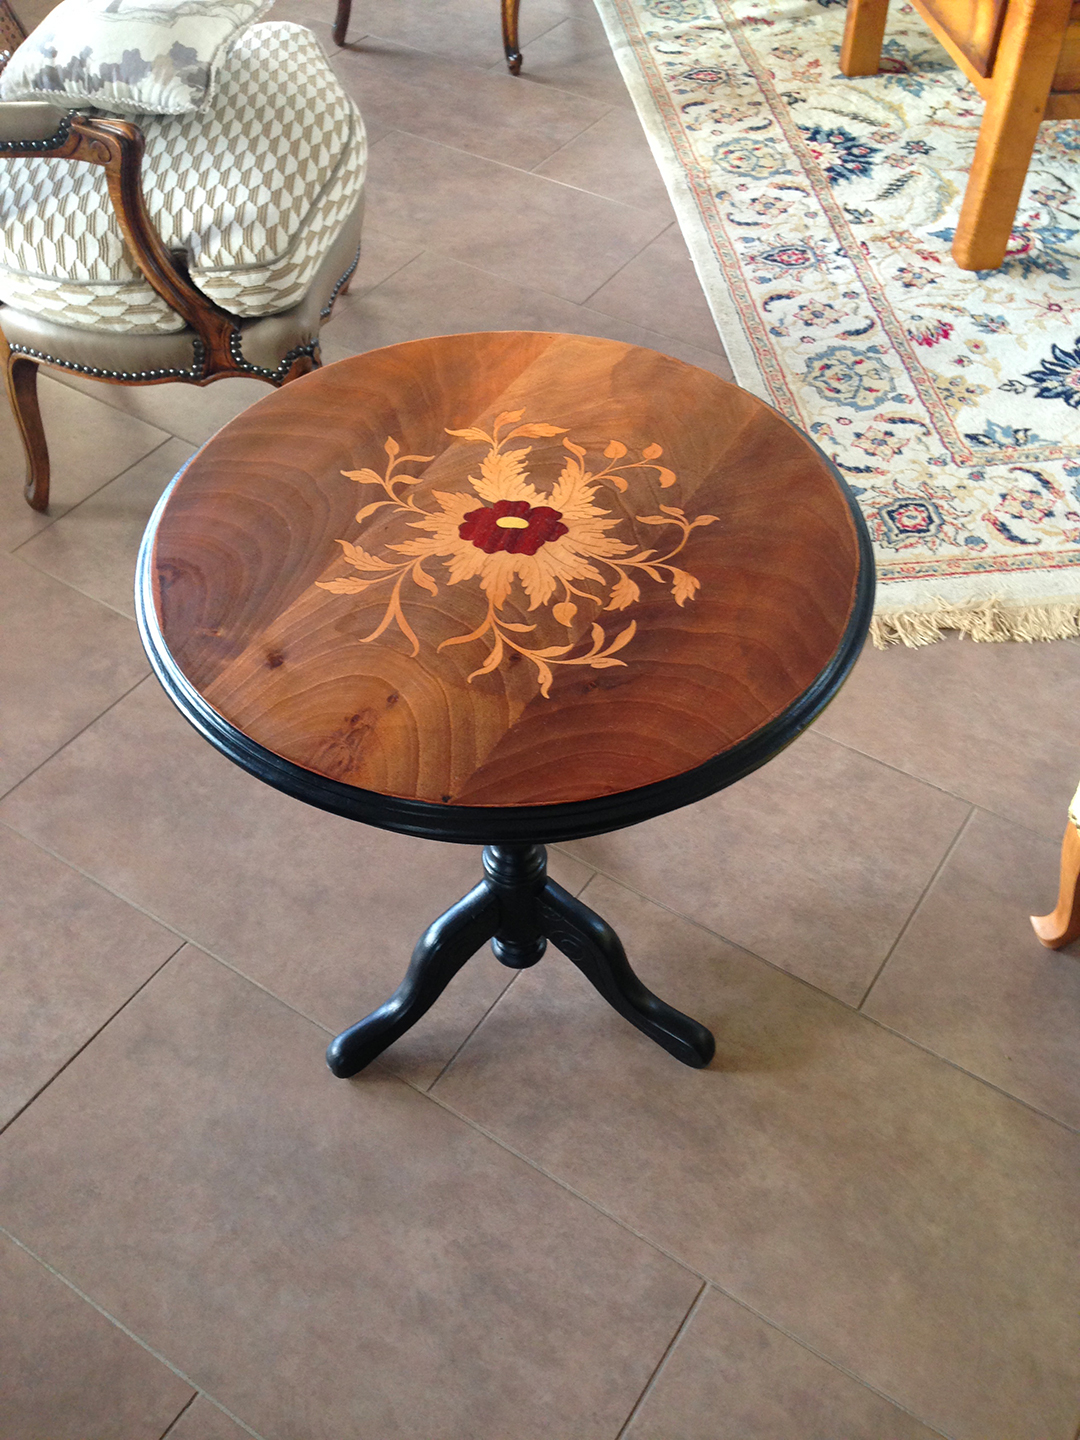 decapage table d'appoint